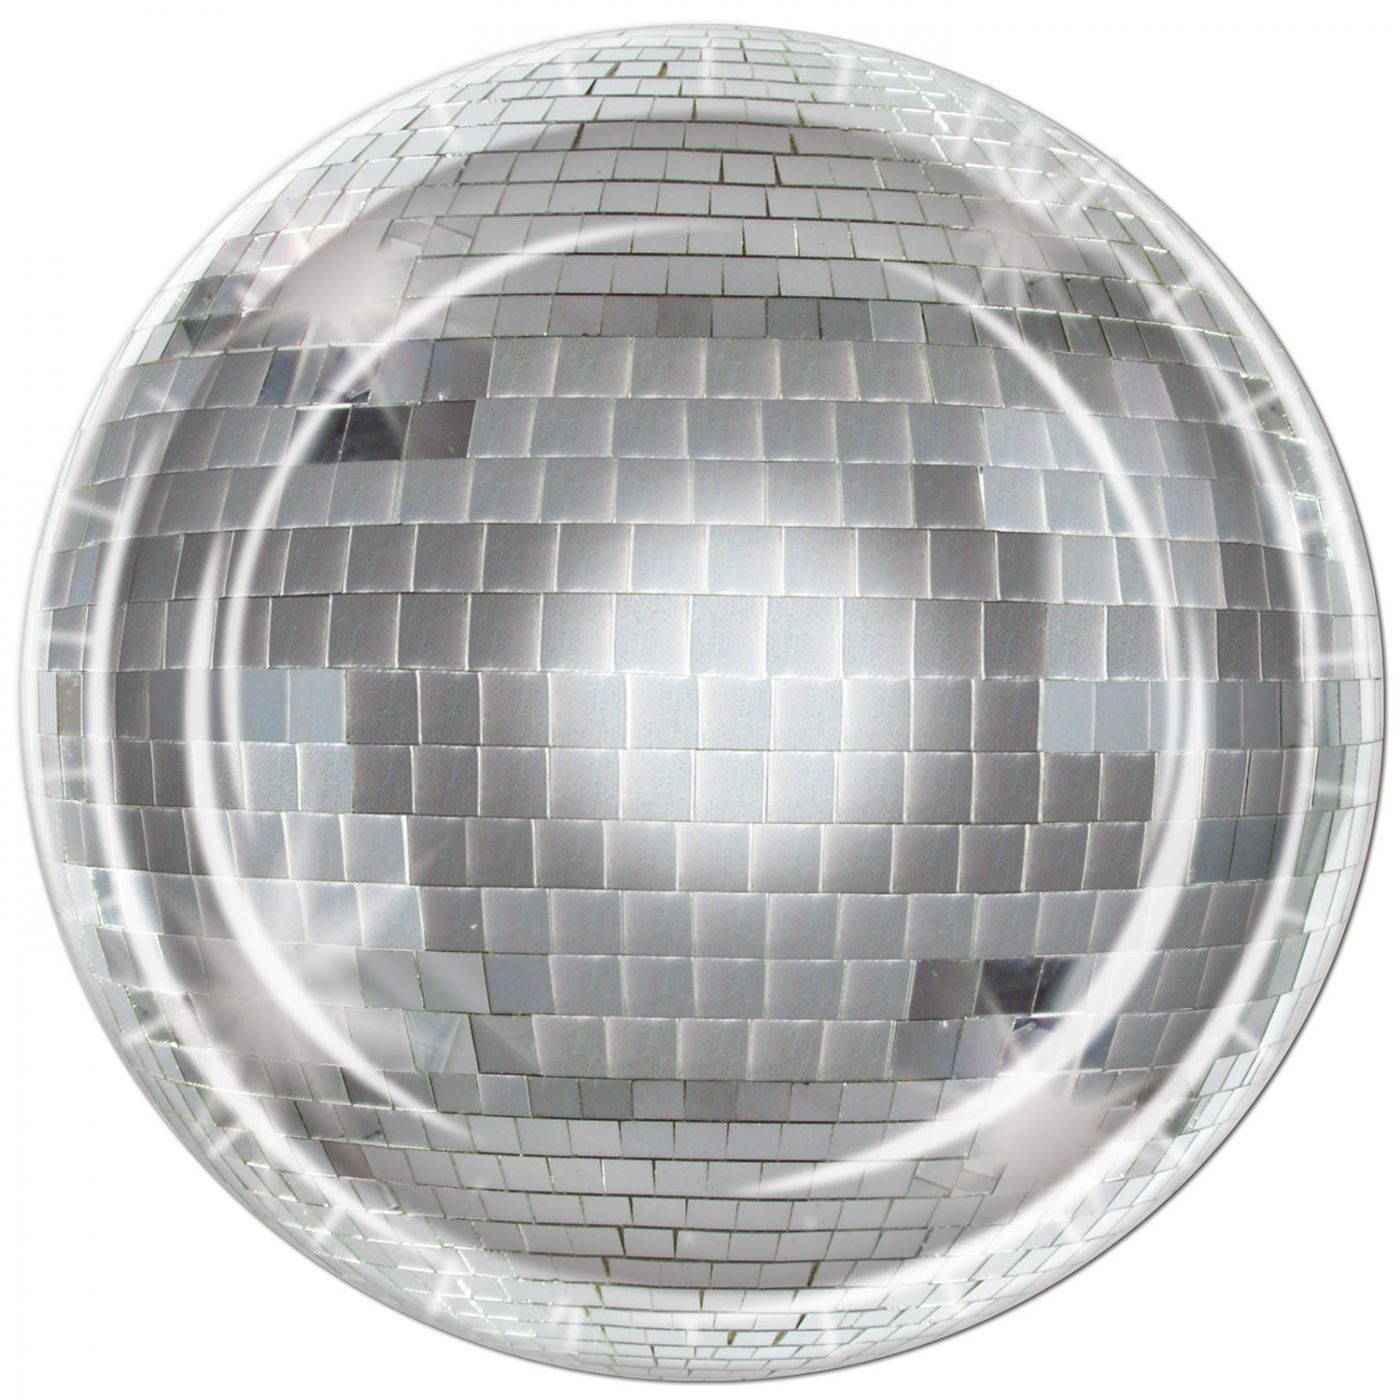 Disco Ball Plates image